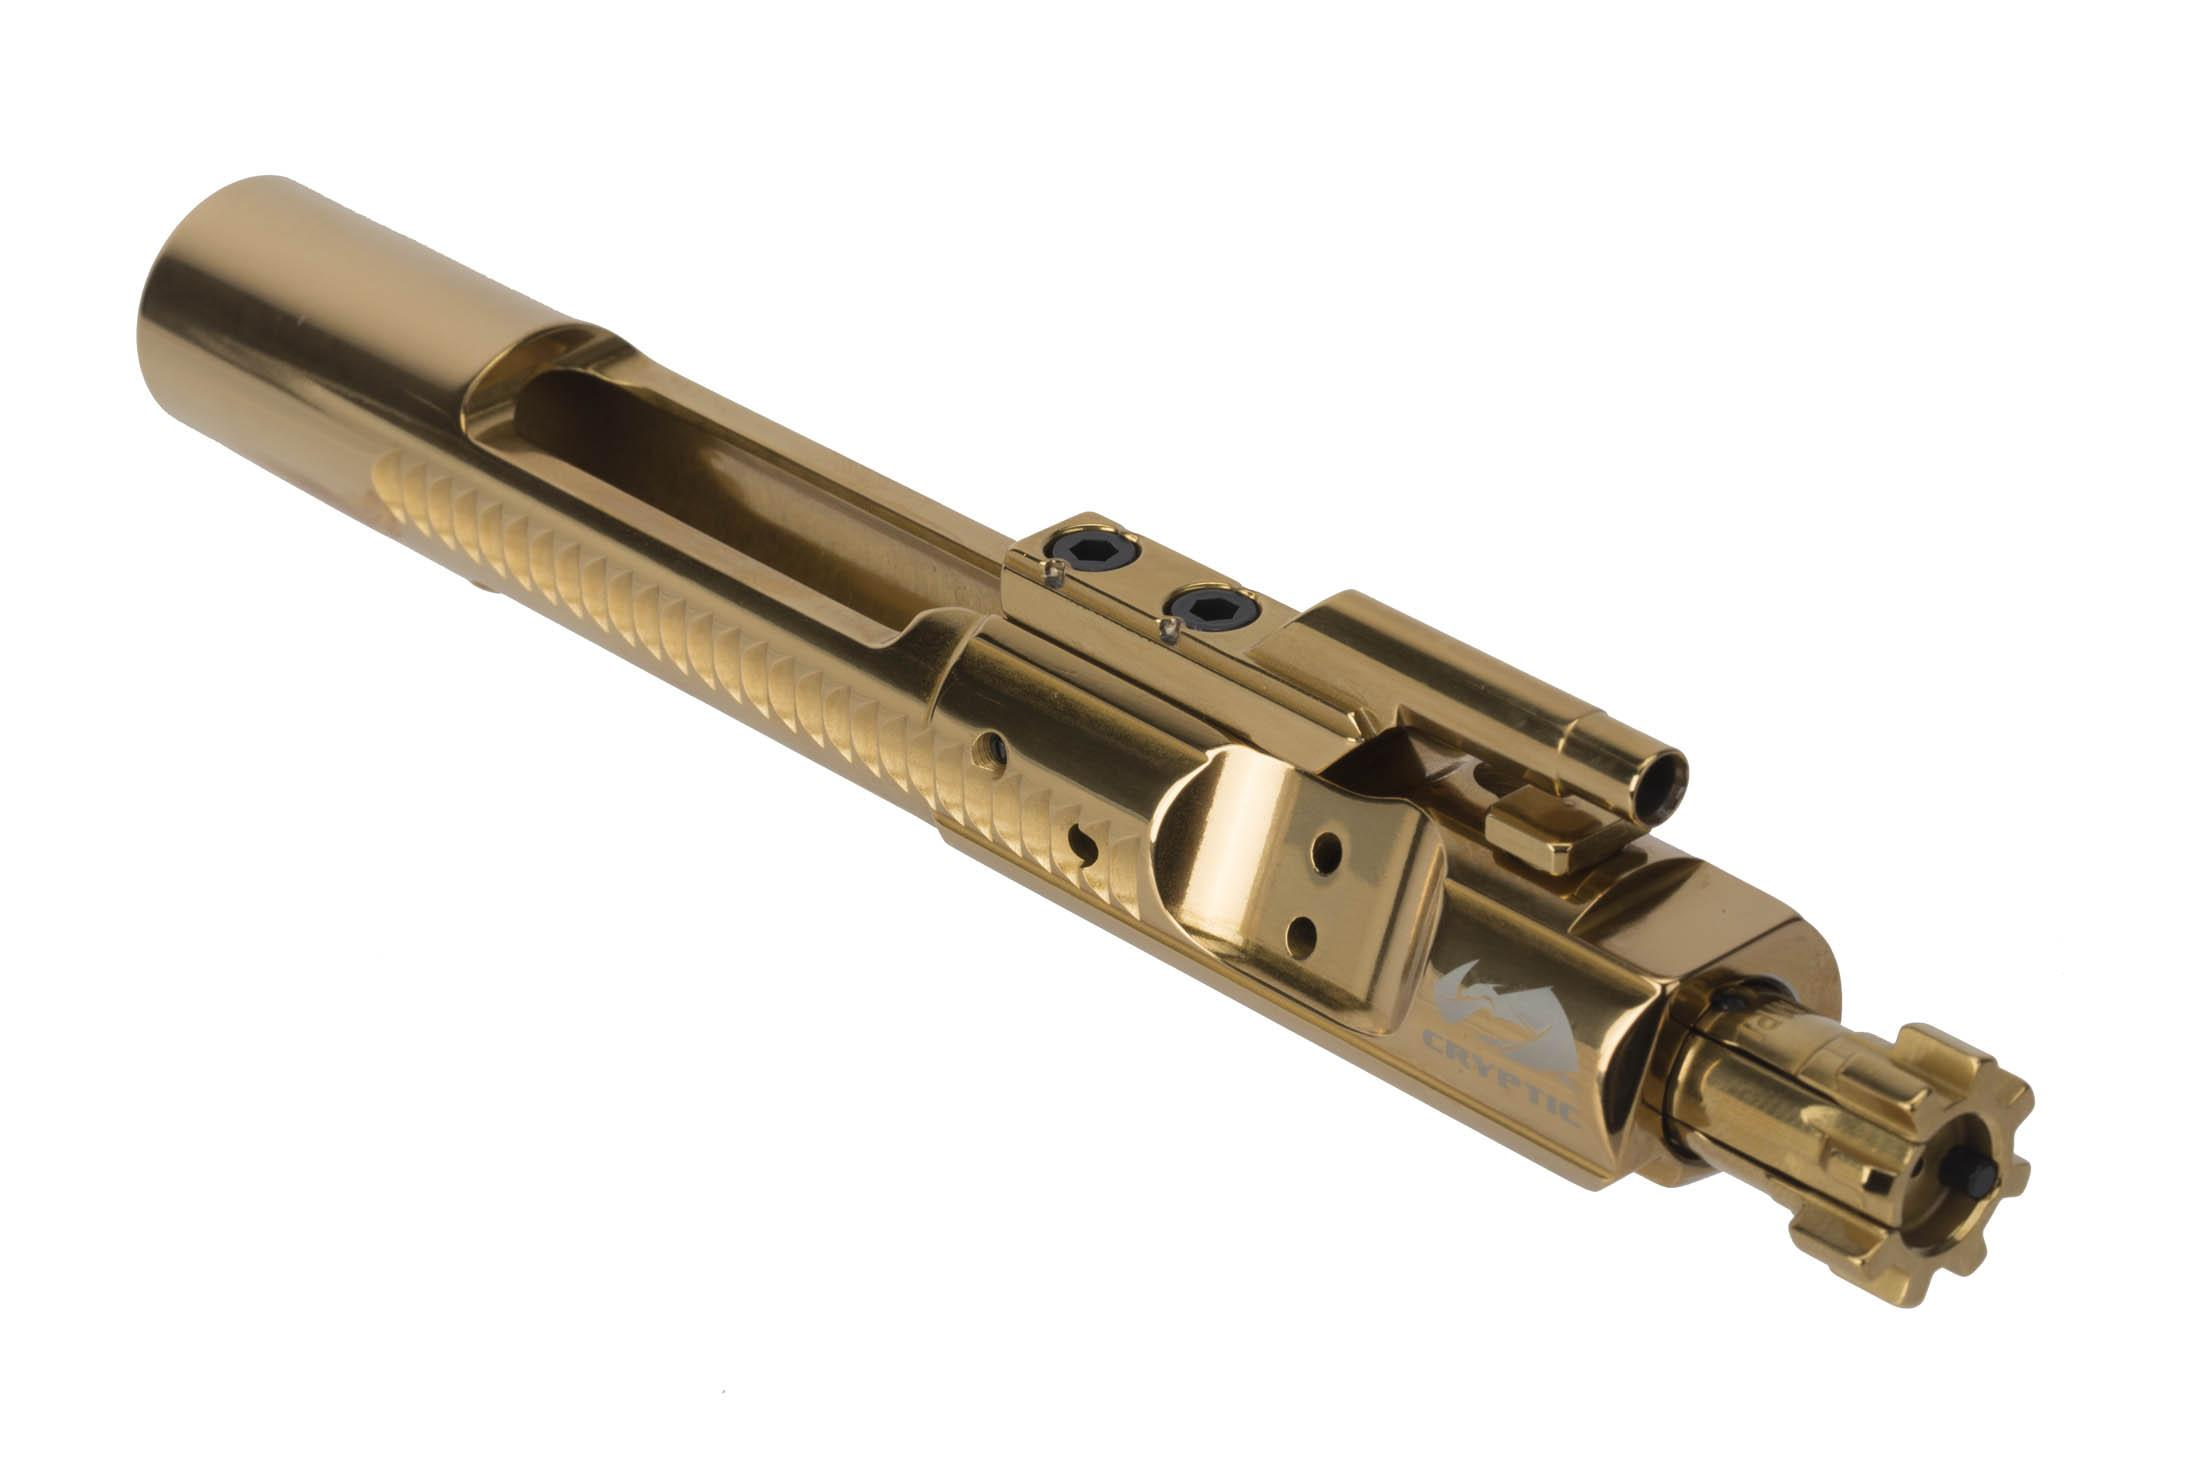 Cryptic Coatings Mystic Gold AR-15 bolt carrier group uses a standard 5.56 NATO magnetic particle inspected bolt assembly